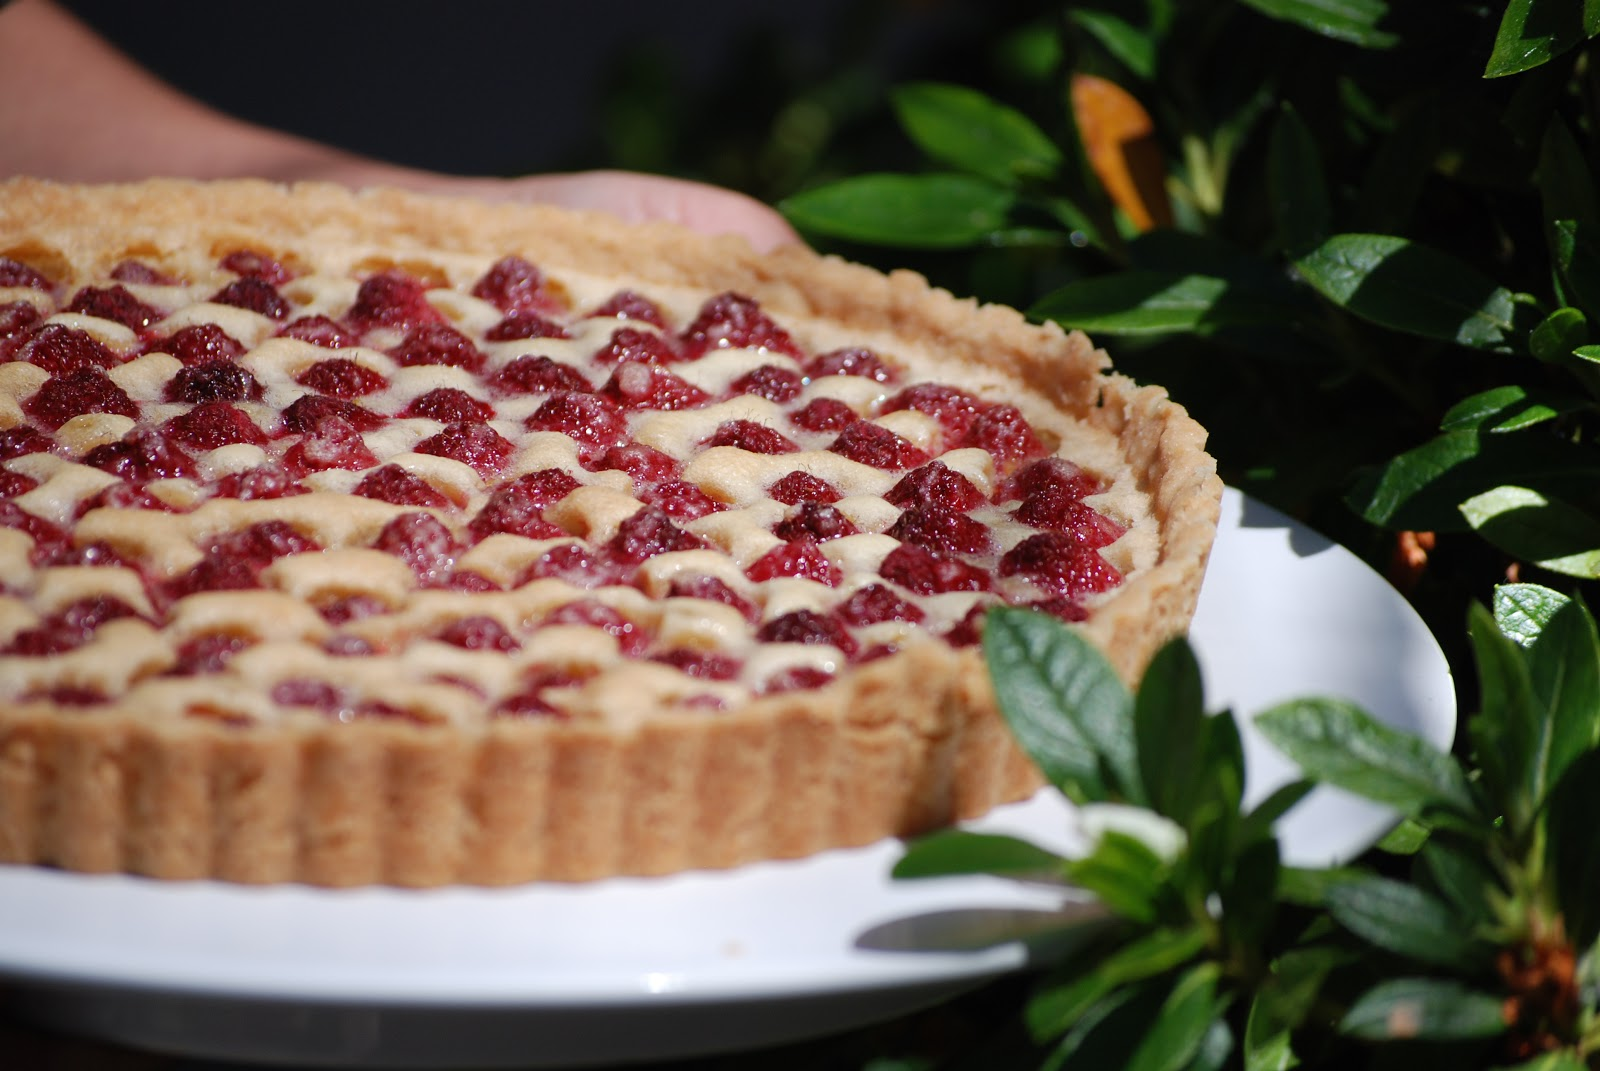 Brown+Butter+Raspberry+Tart+II.JPG